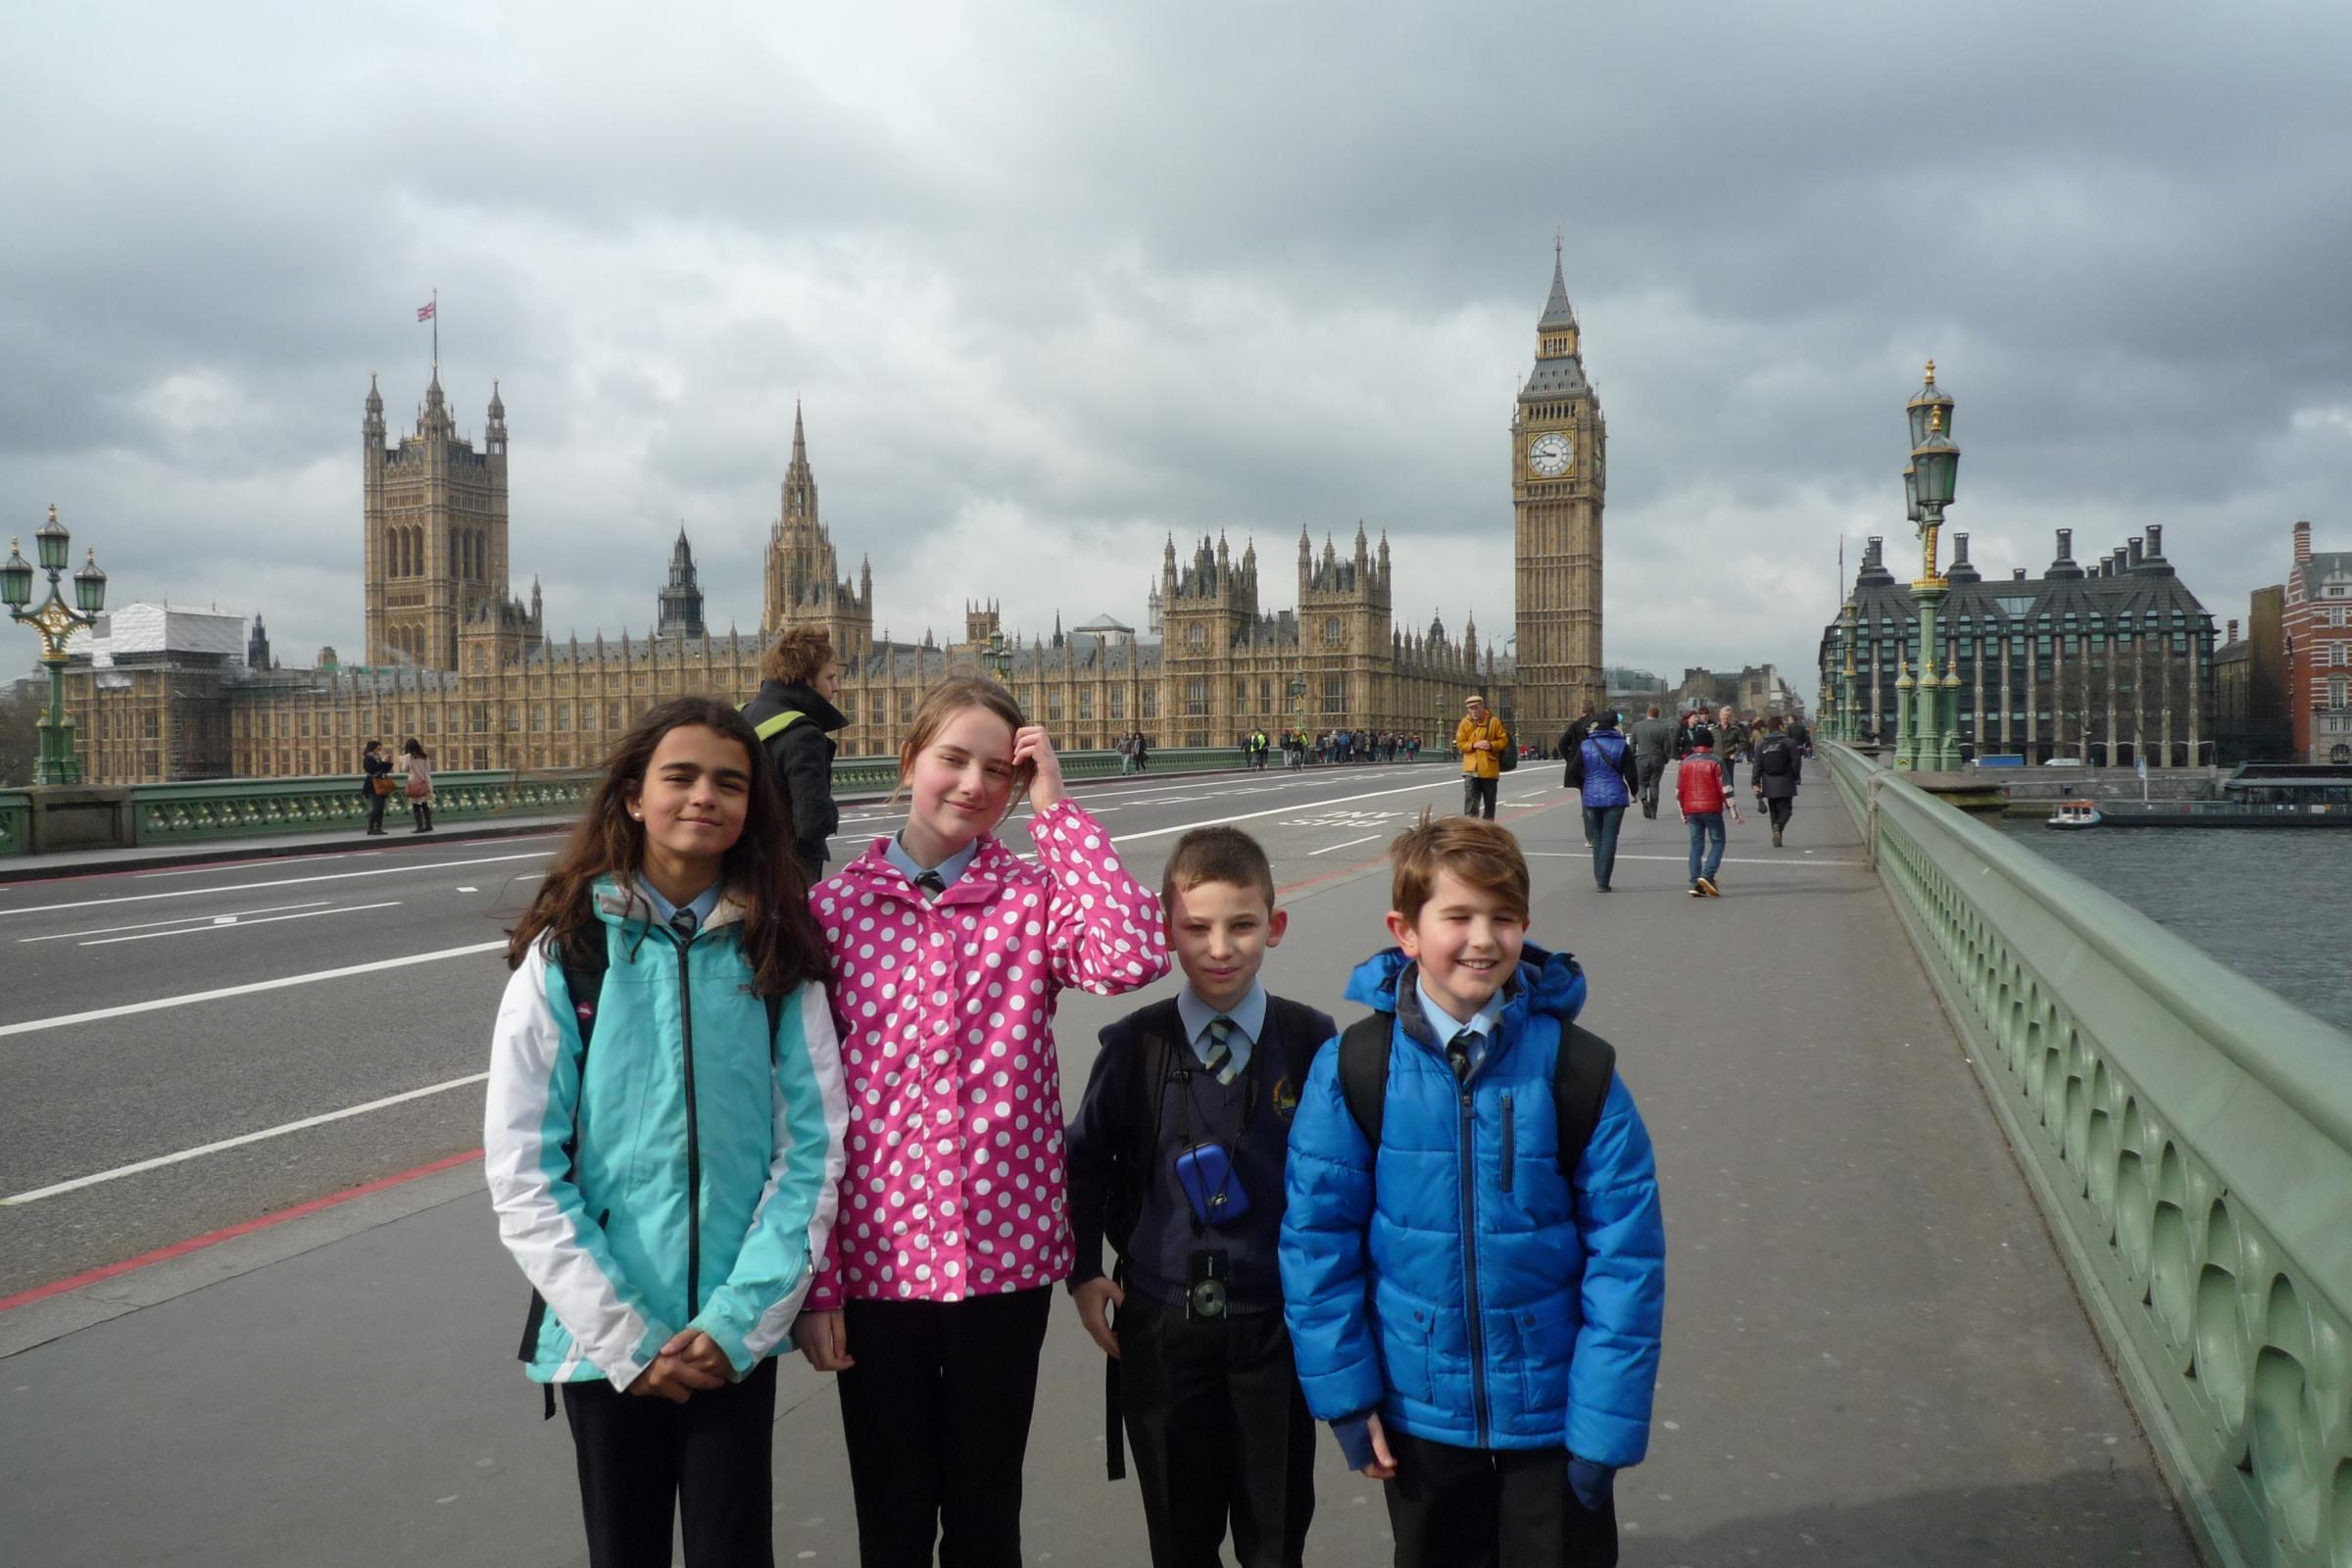 St Barnabas First and Middle School pupils Amara De Silva-Morgan, 12, Emma Galvin, 12, Ben Atkin, 11 and George Grech, 10, at the Houses of Parliament.